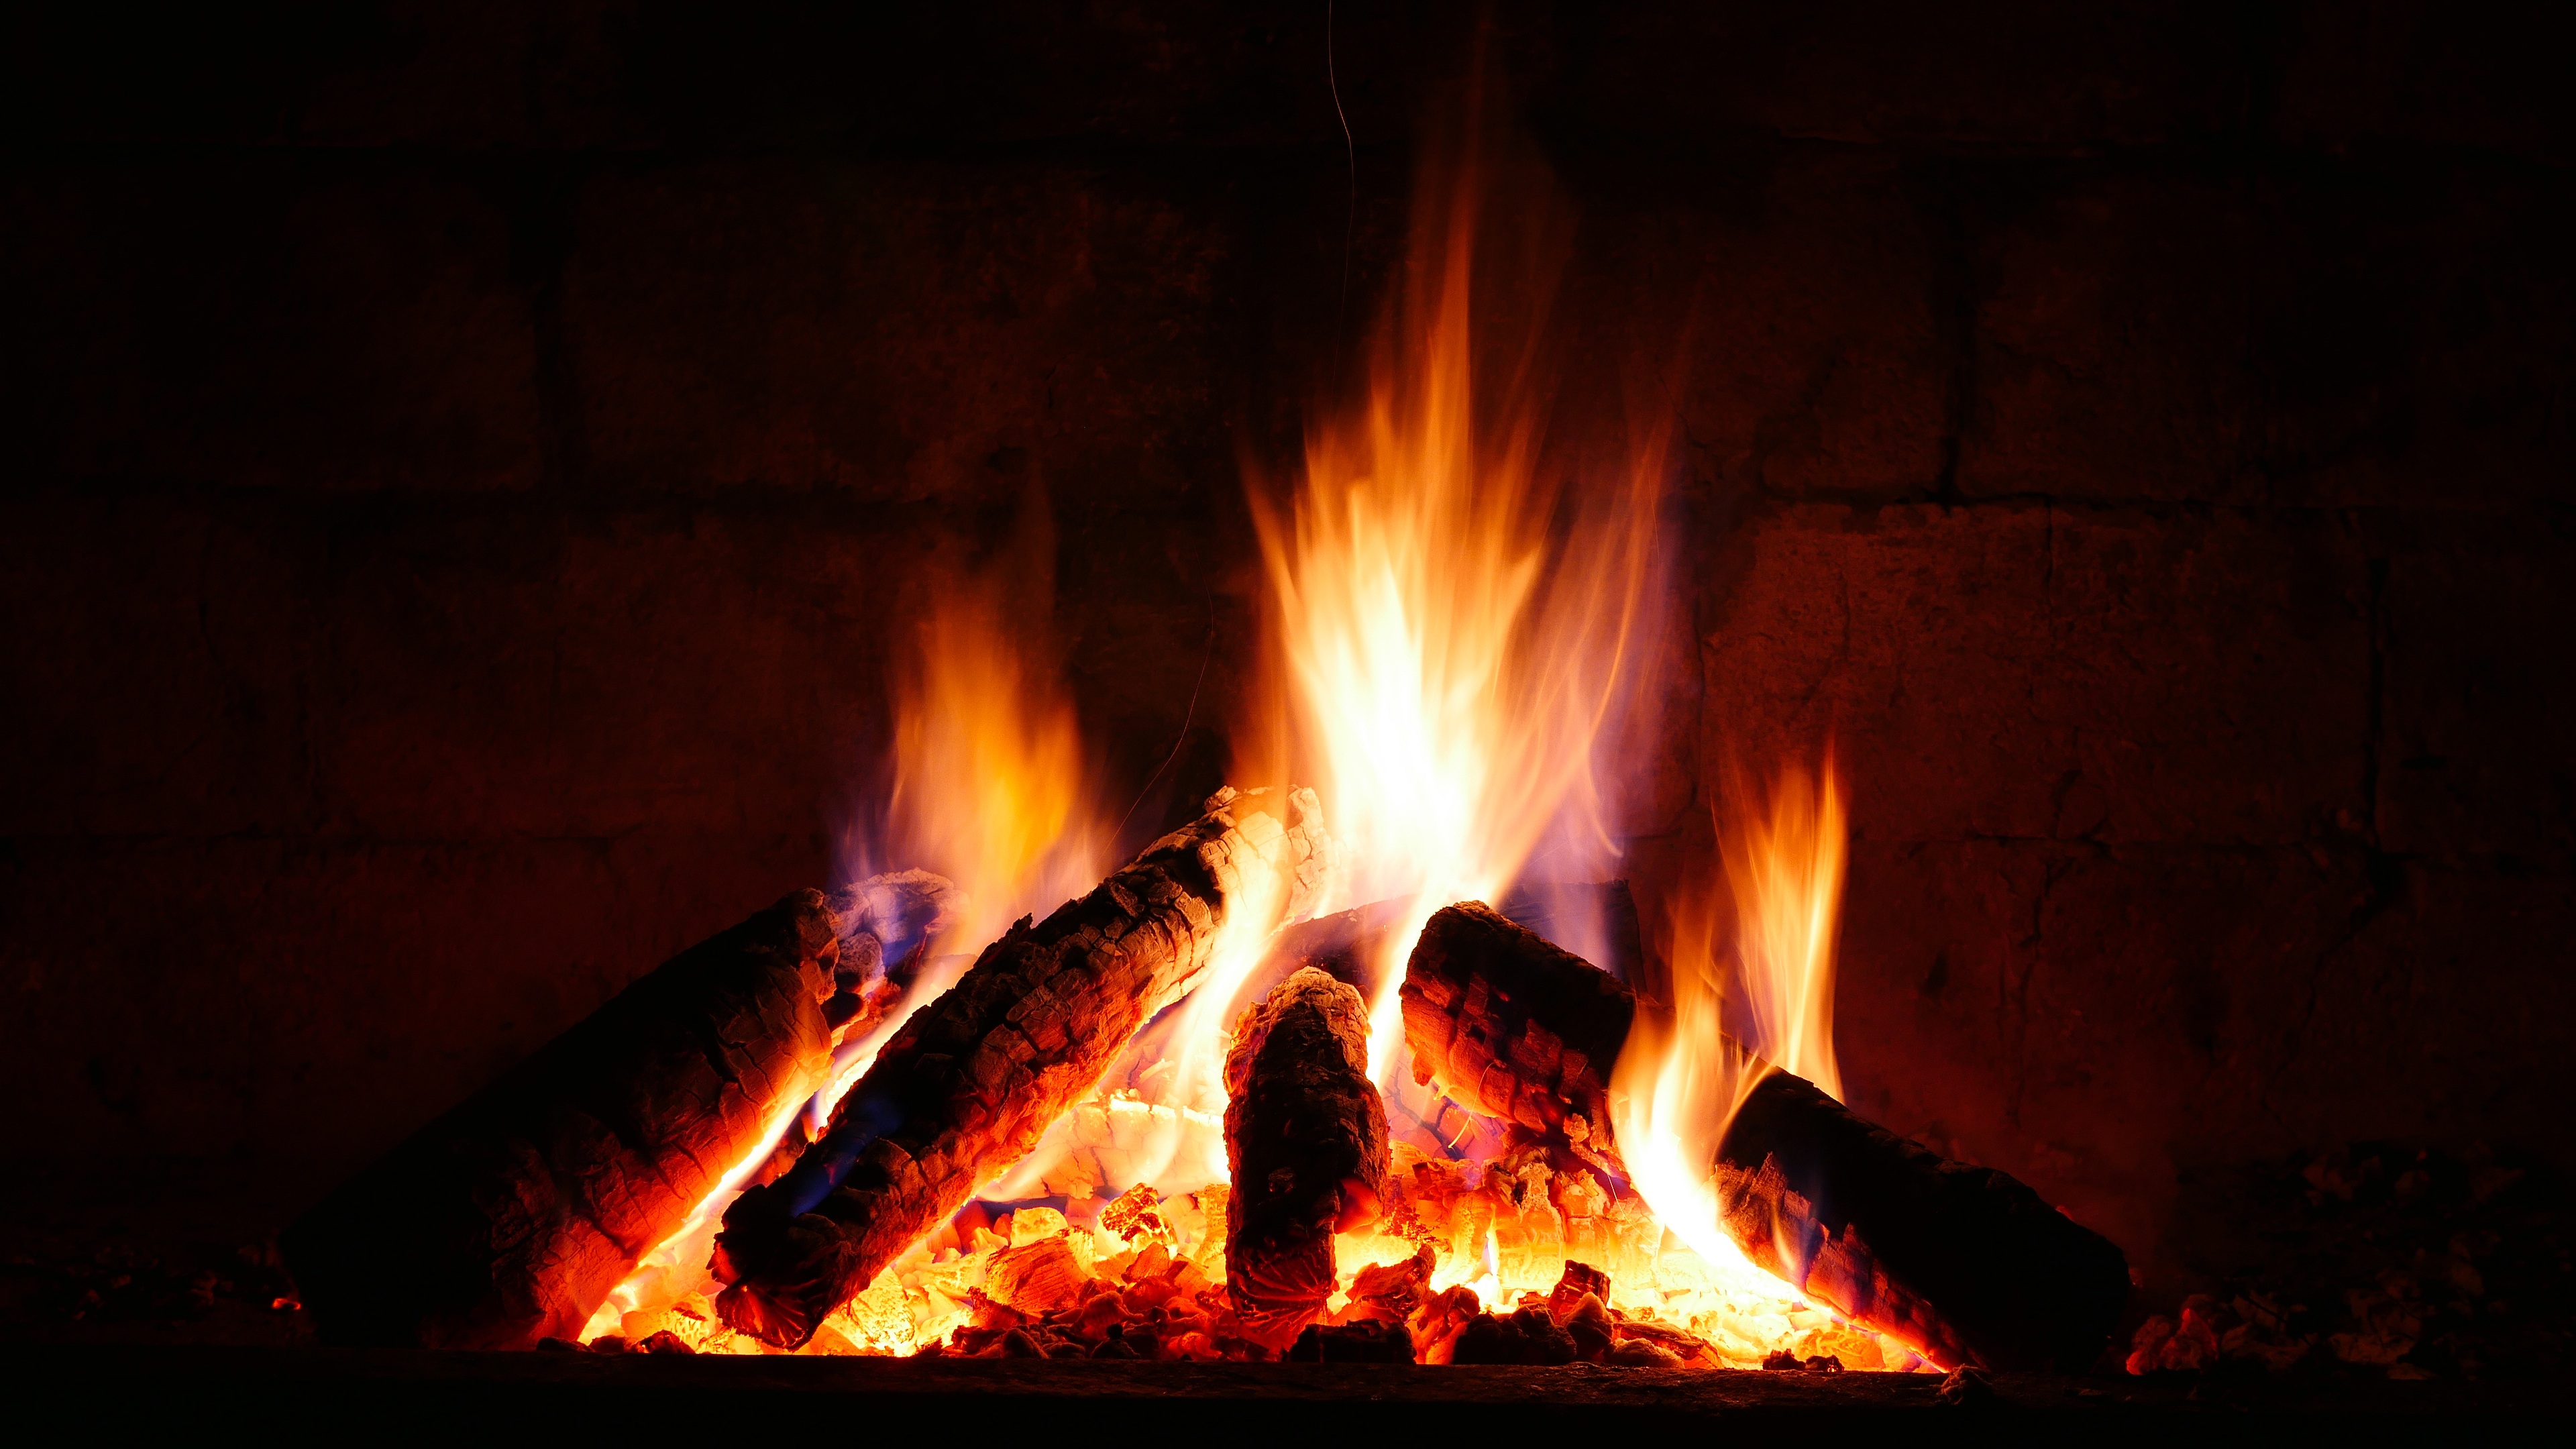 Find the best free stock images about fireplace. Download all photos and use them even for commercial projects.